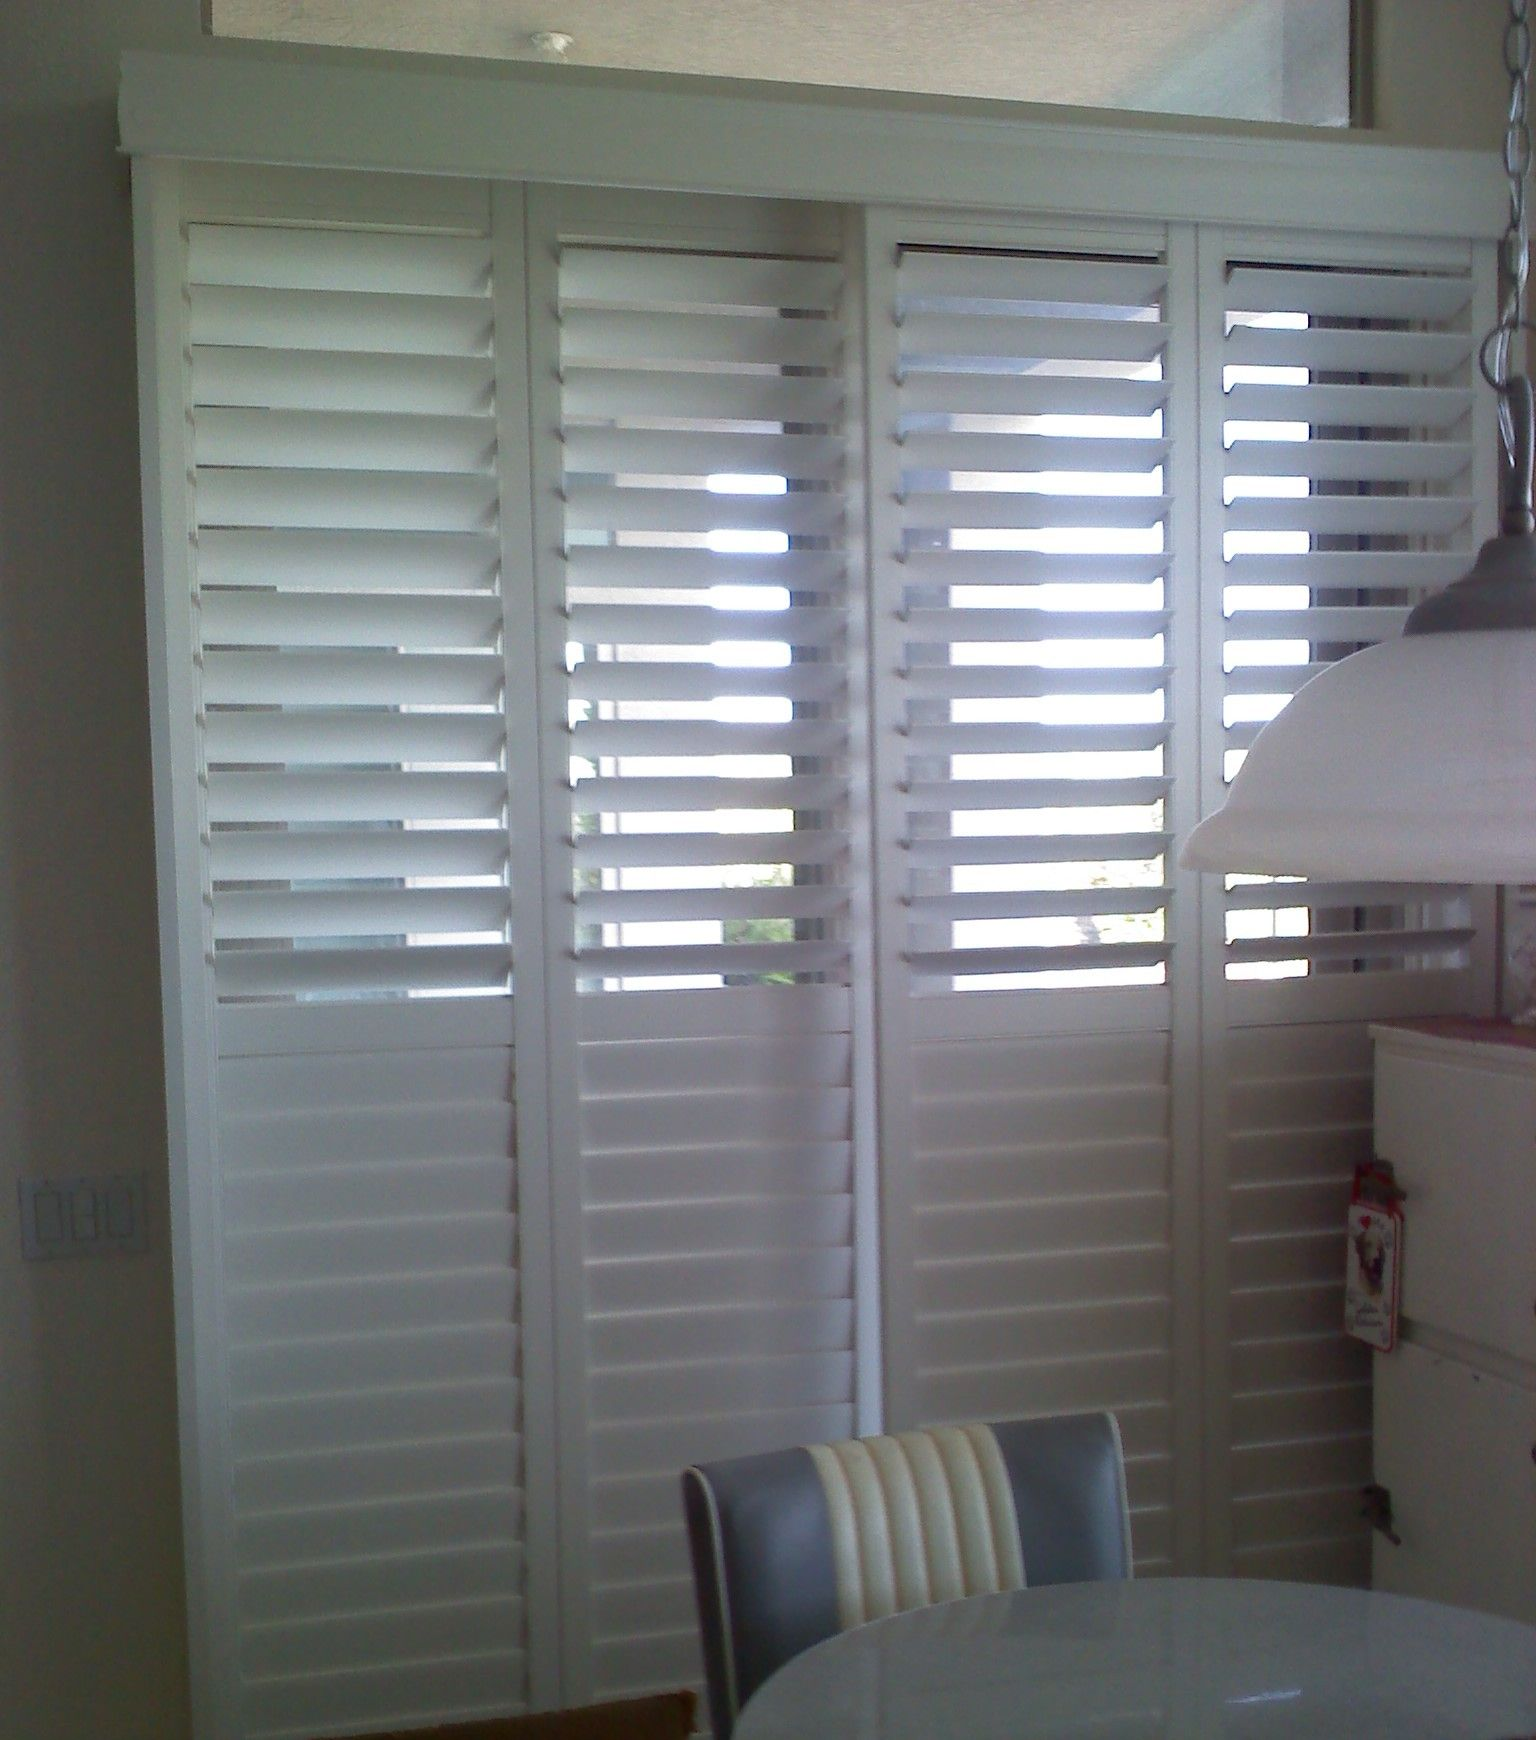 Marvelous Plantation Shutters For Sliding Patio Doors   The Huge Growth In Demand For  Folding Sliding Doors On The Past Two Or Three Y